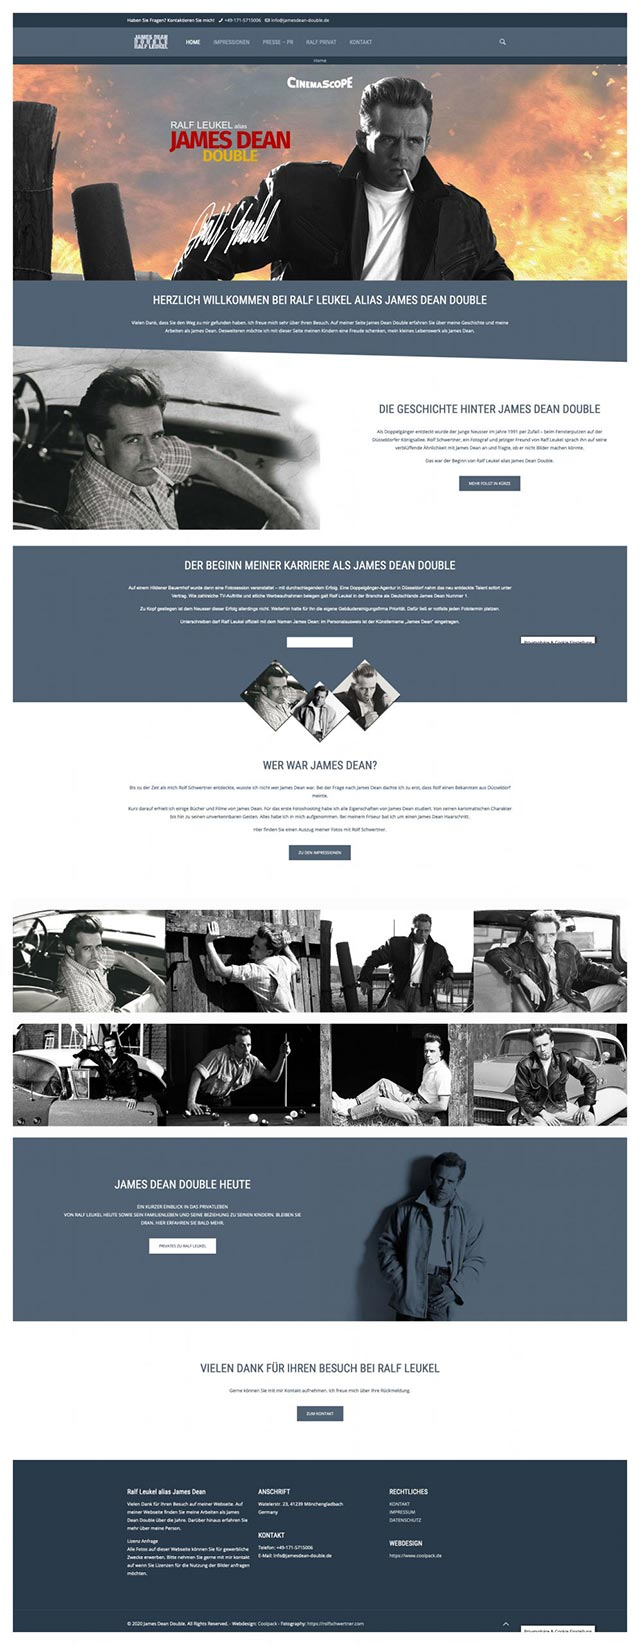 coolpack webdesign düsseldorf - James Dean Double